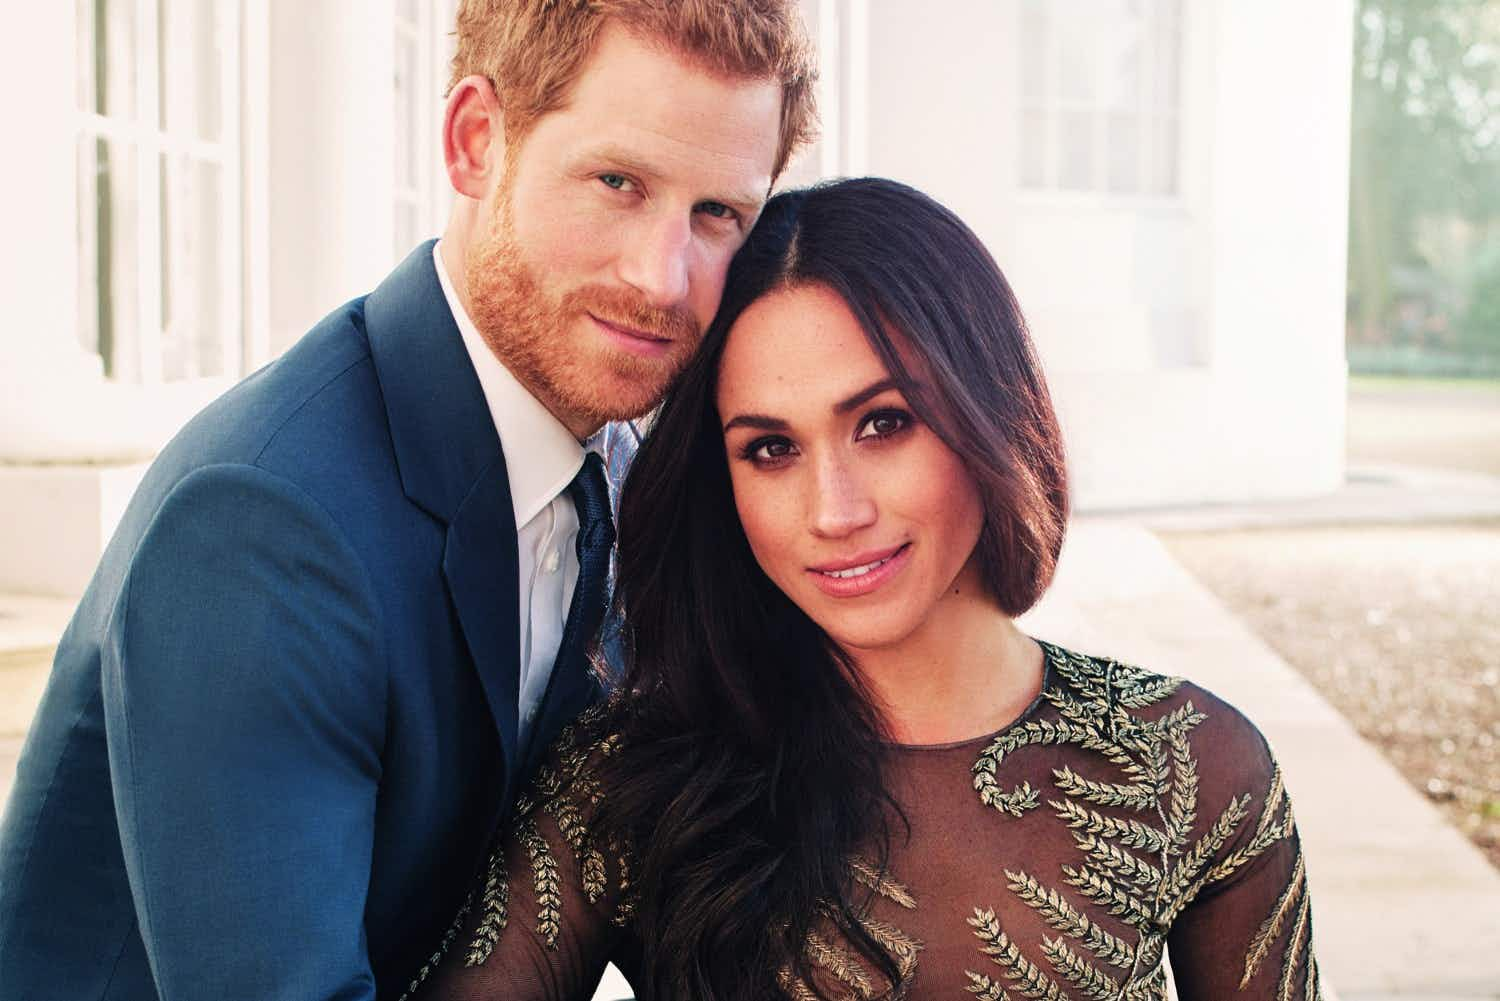 Revealed: the hotels where Prince Harry and Meghan Markle will spend tonight